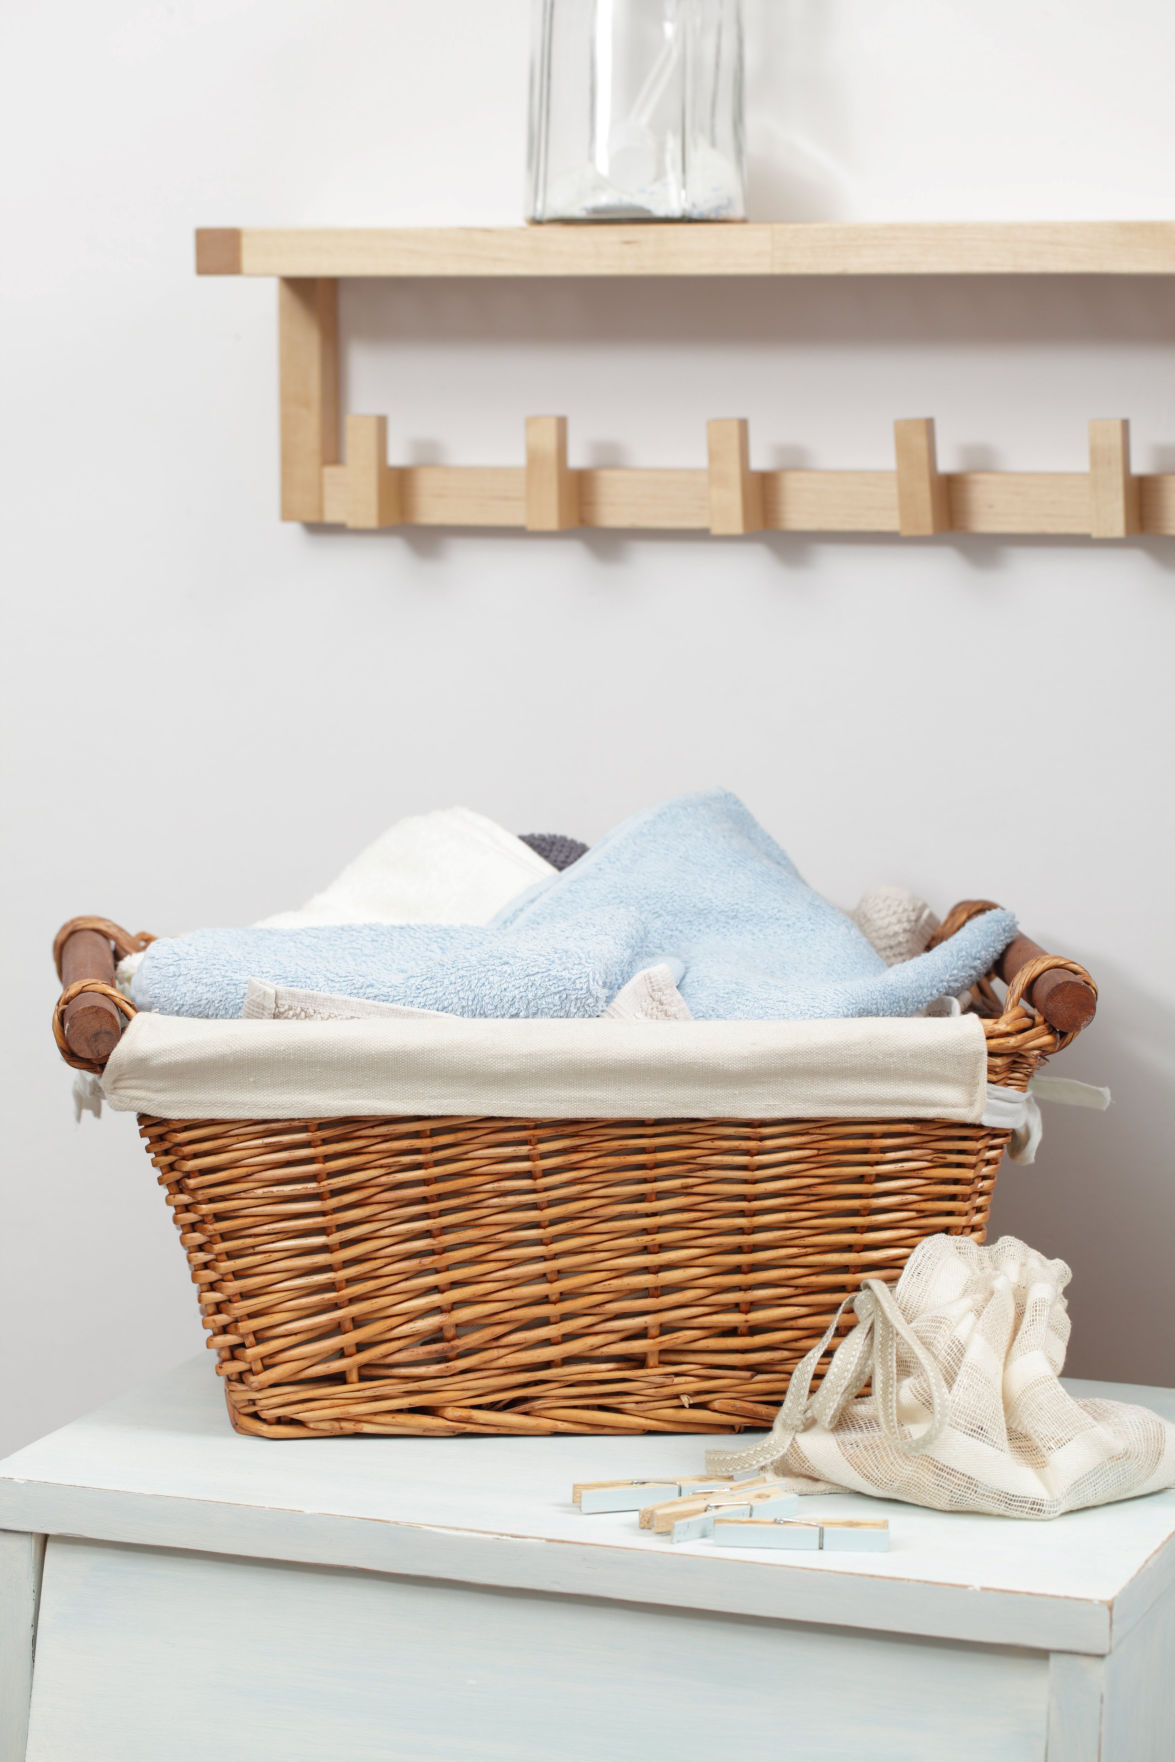 A high functioning laundry room should have a flat counter like area for folding and a stylish laundry basket for easy transportation to and from closets